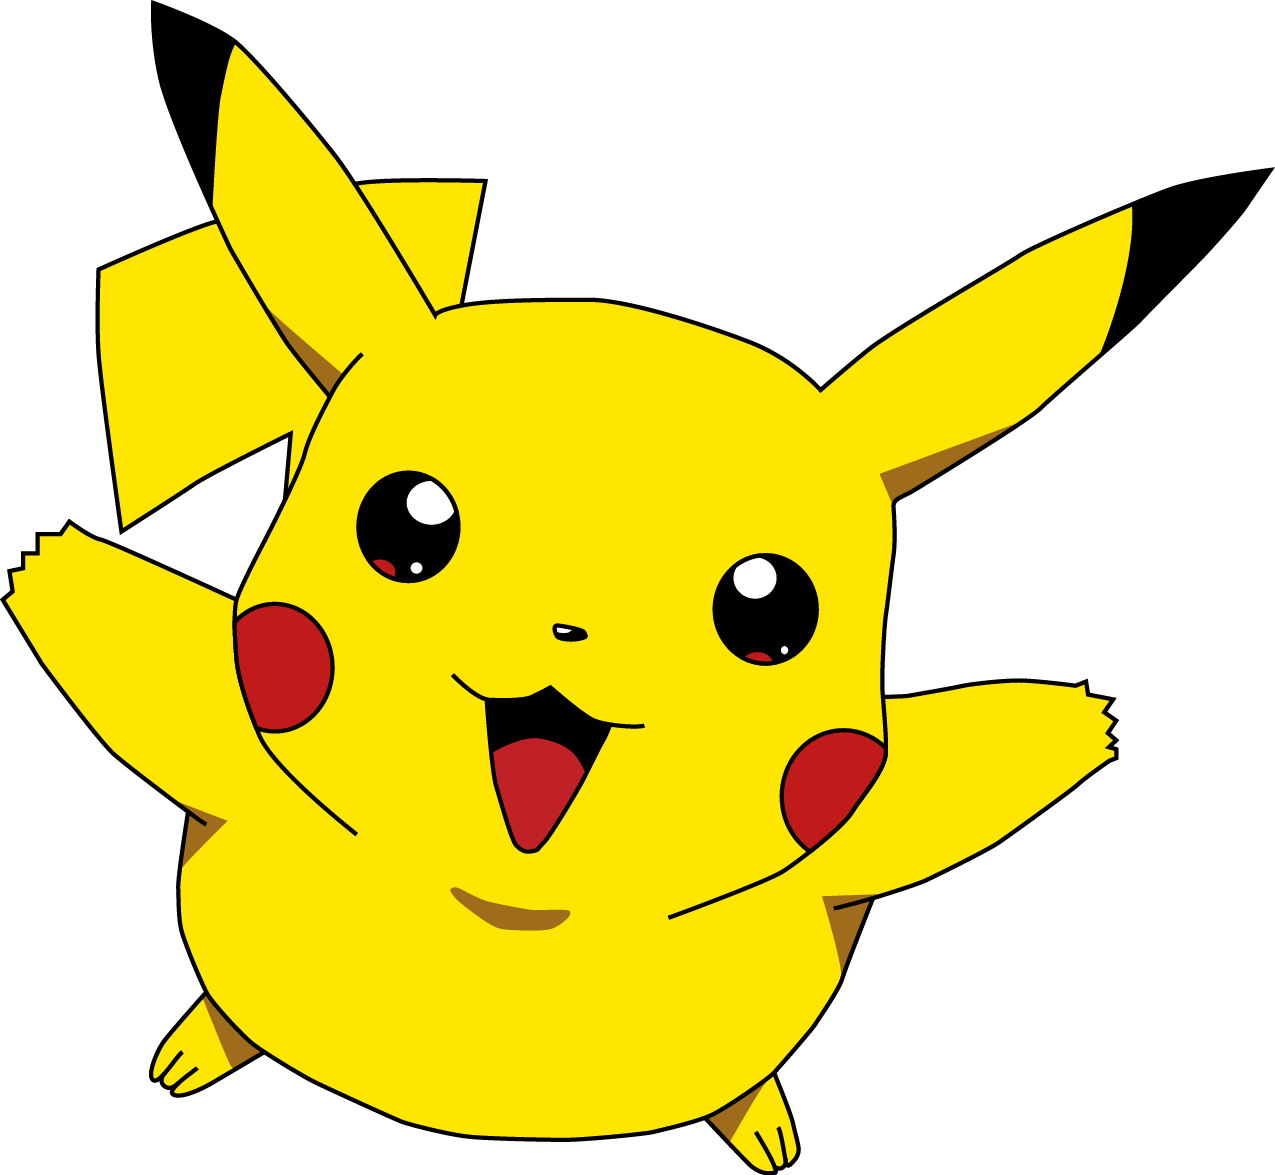 Pikachu (TRANSPARENT).png - Pokemon HD PNG